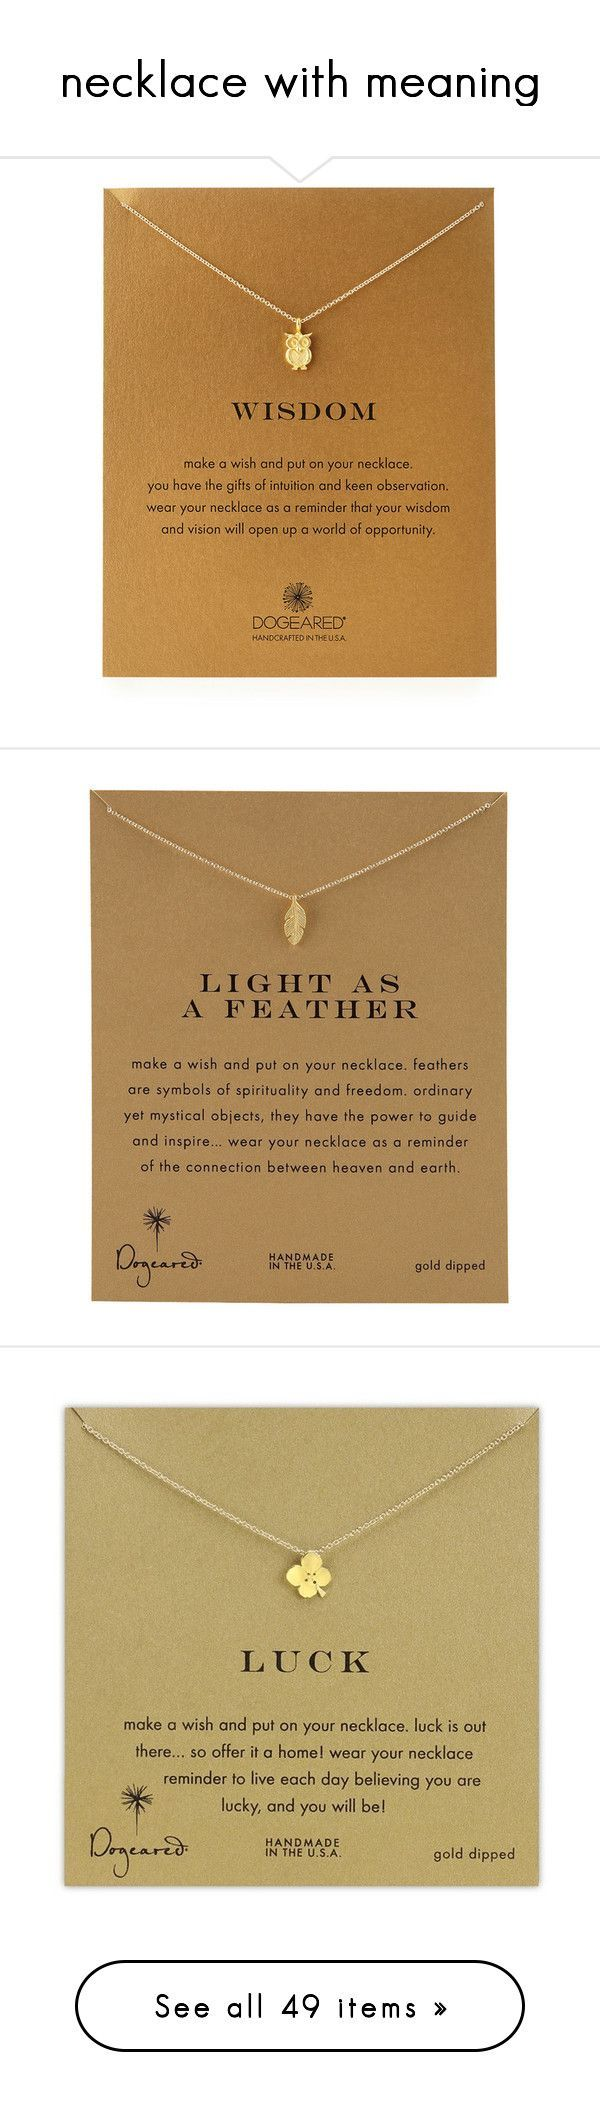 """""""necklace with meaning"""" by johannajeanne ❤ liked on Polyvore featuring jewelry, necklaces, gold, 14k chain necklace, pendants & necklaces, hand crafted jewelry, 14k pendant, dogeared jewelry, accessories and 14 karat gold necklace"""